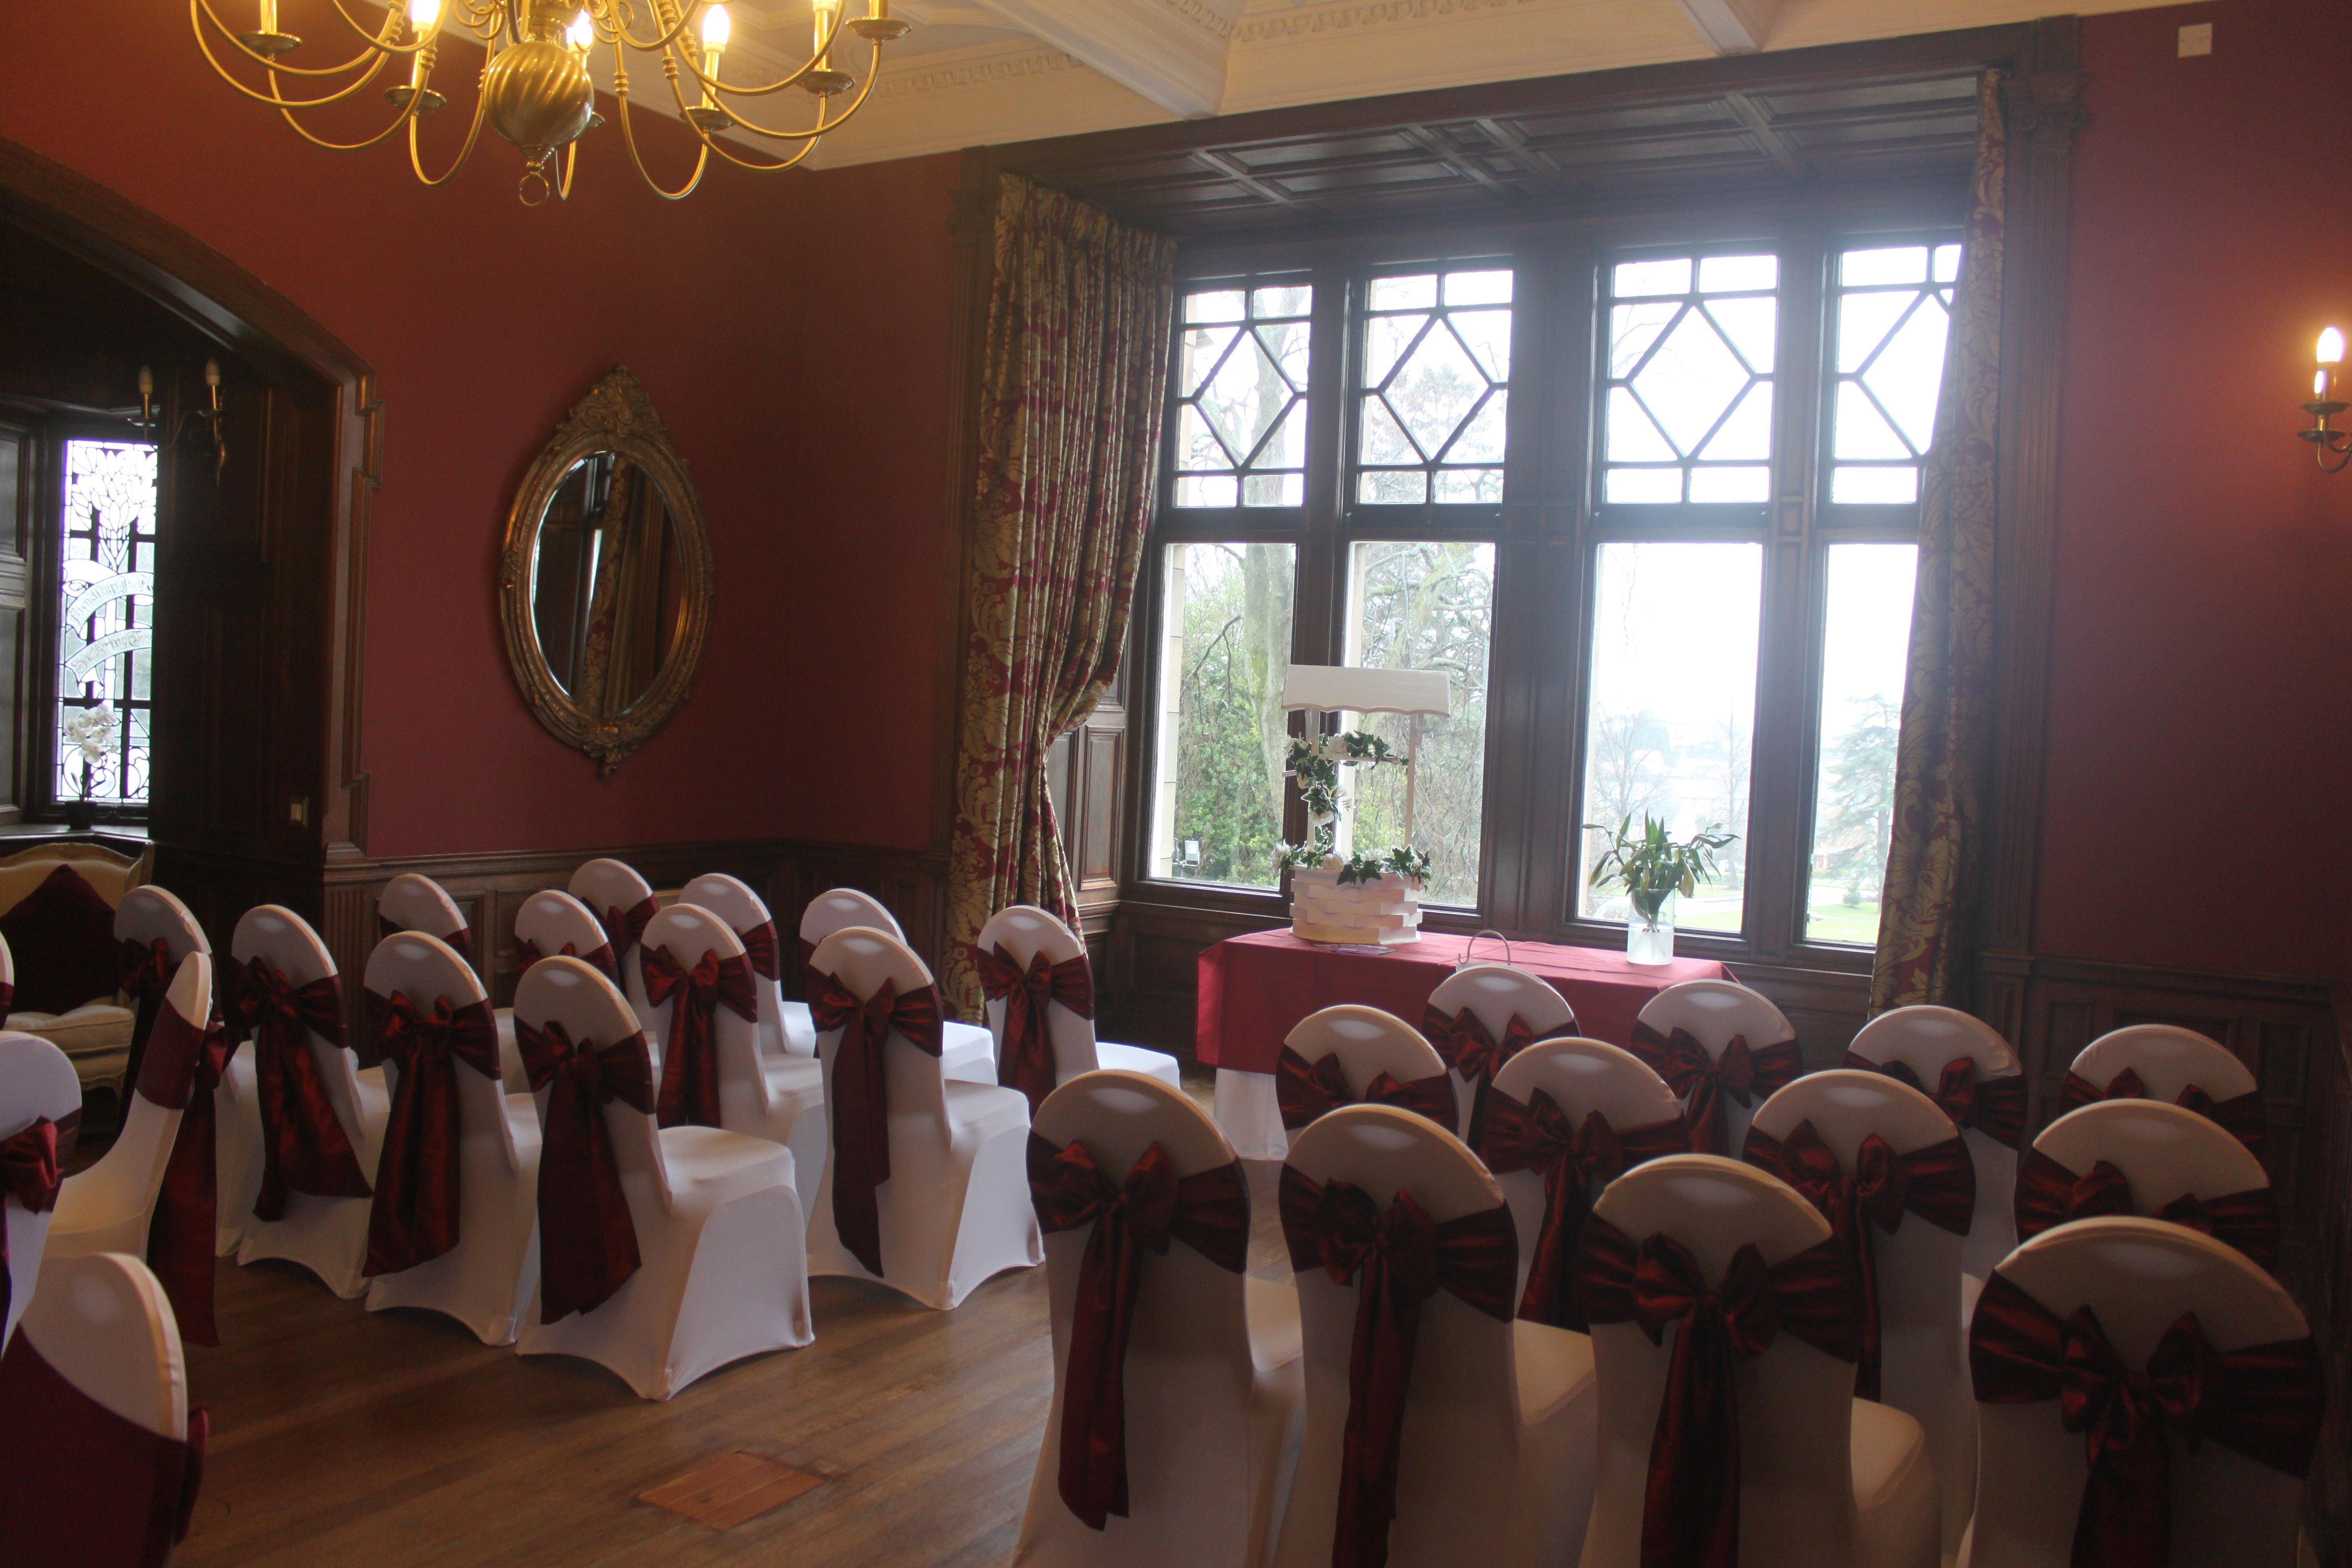 Inglenook Room At Inglewood House In Alloa Near Stirling Ideal For Wedding Ceremonies Small